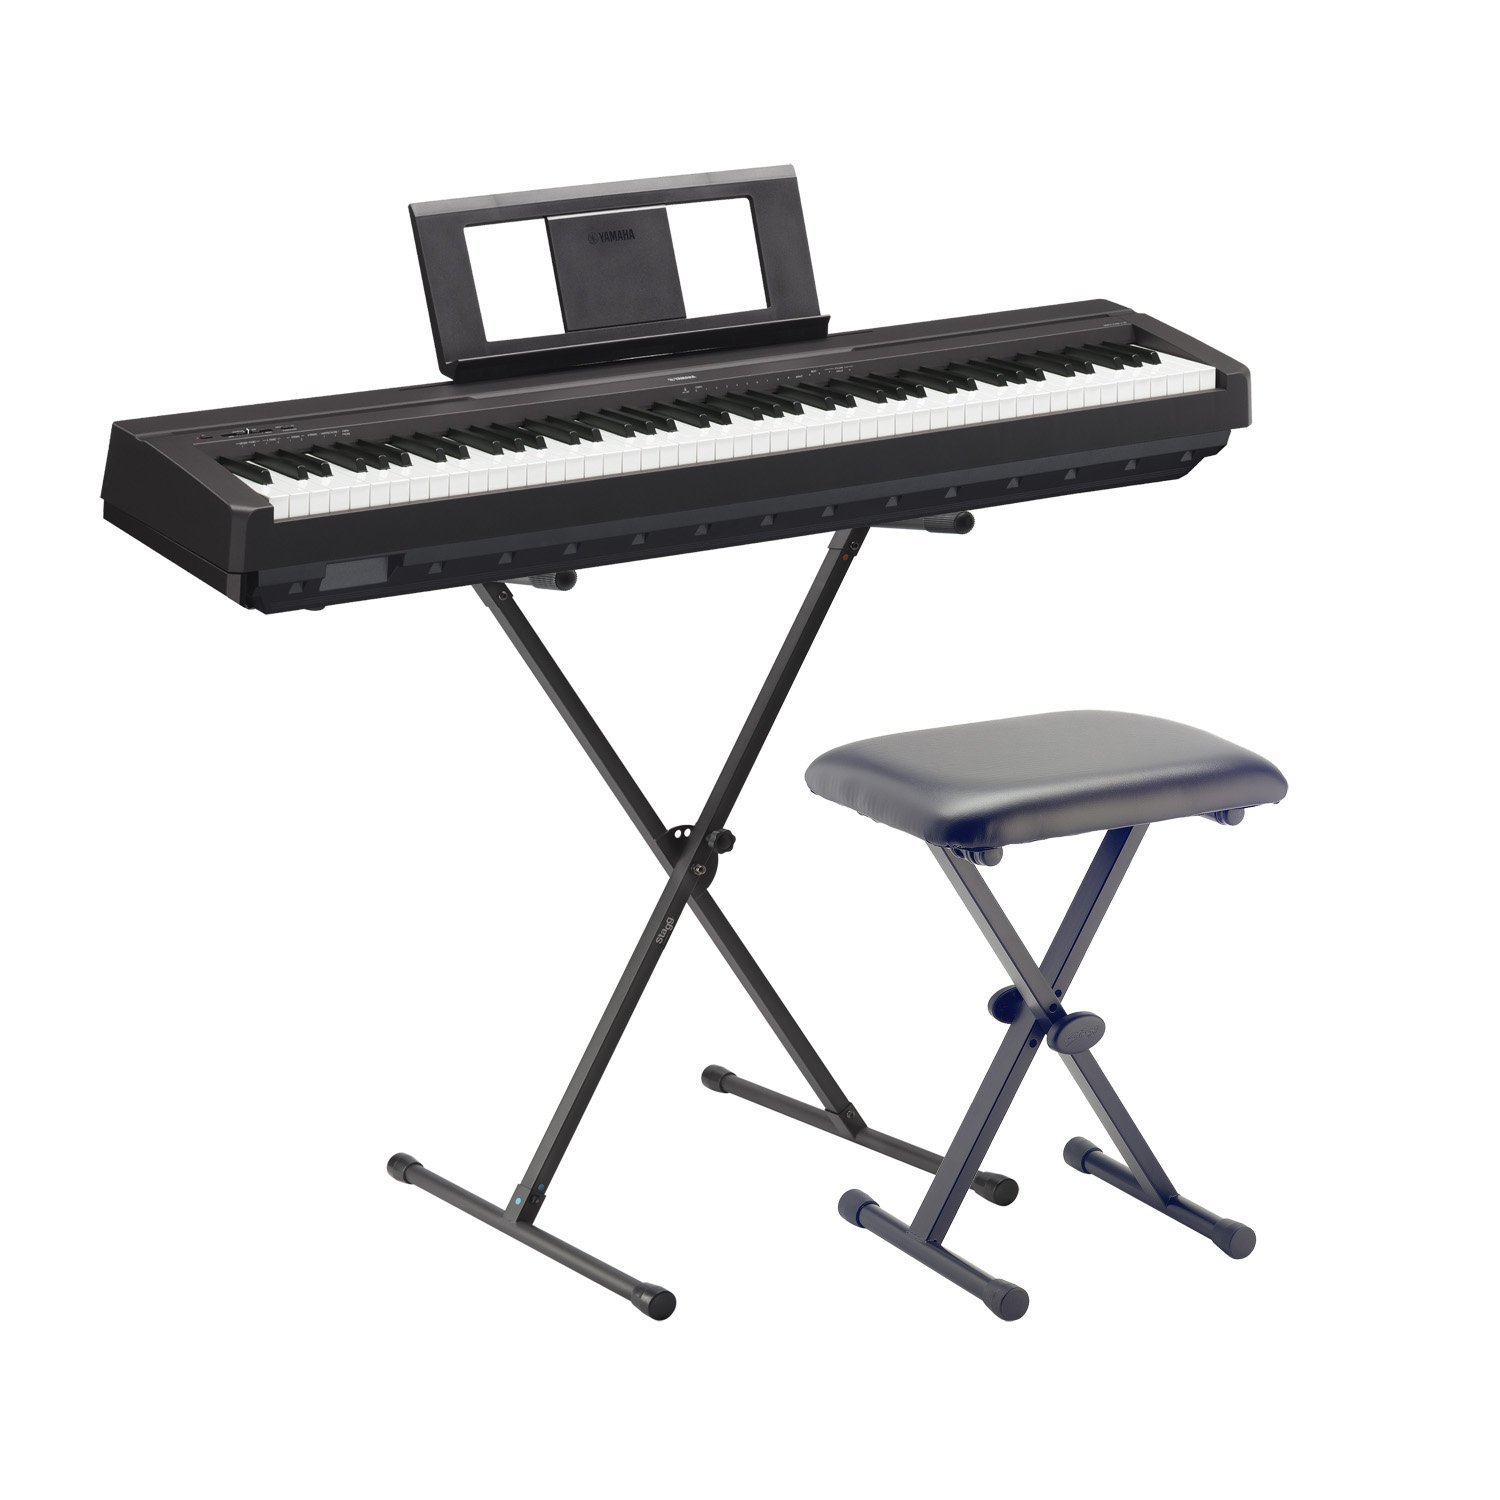 piano digital yamaha serie p los pianos portables de yamaha. Black Bedroom Furniture Sets. Home Design Ideas